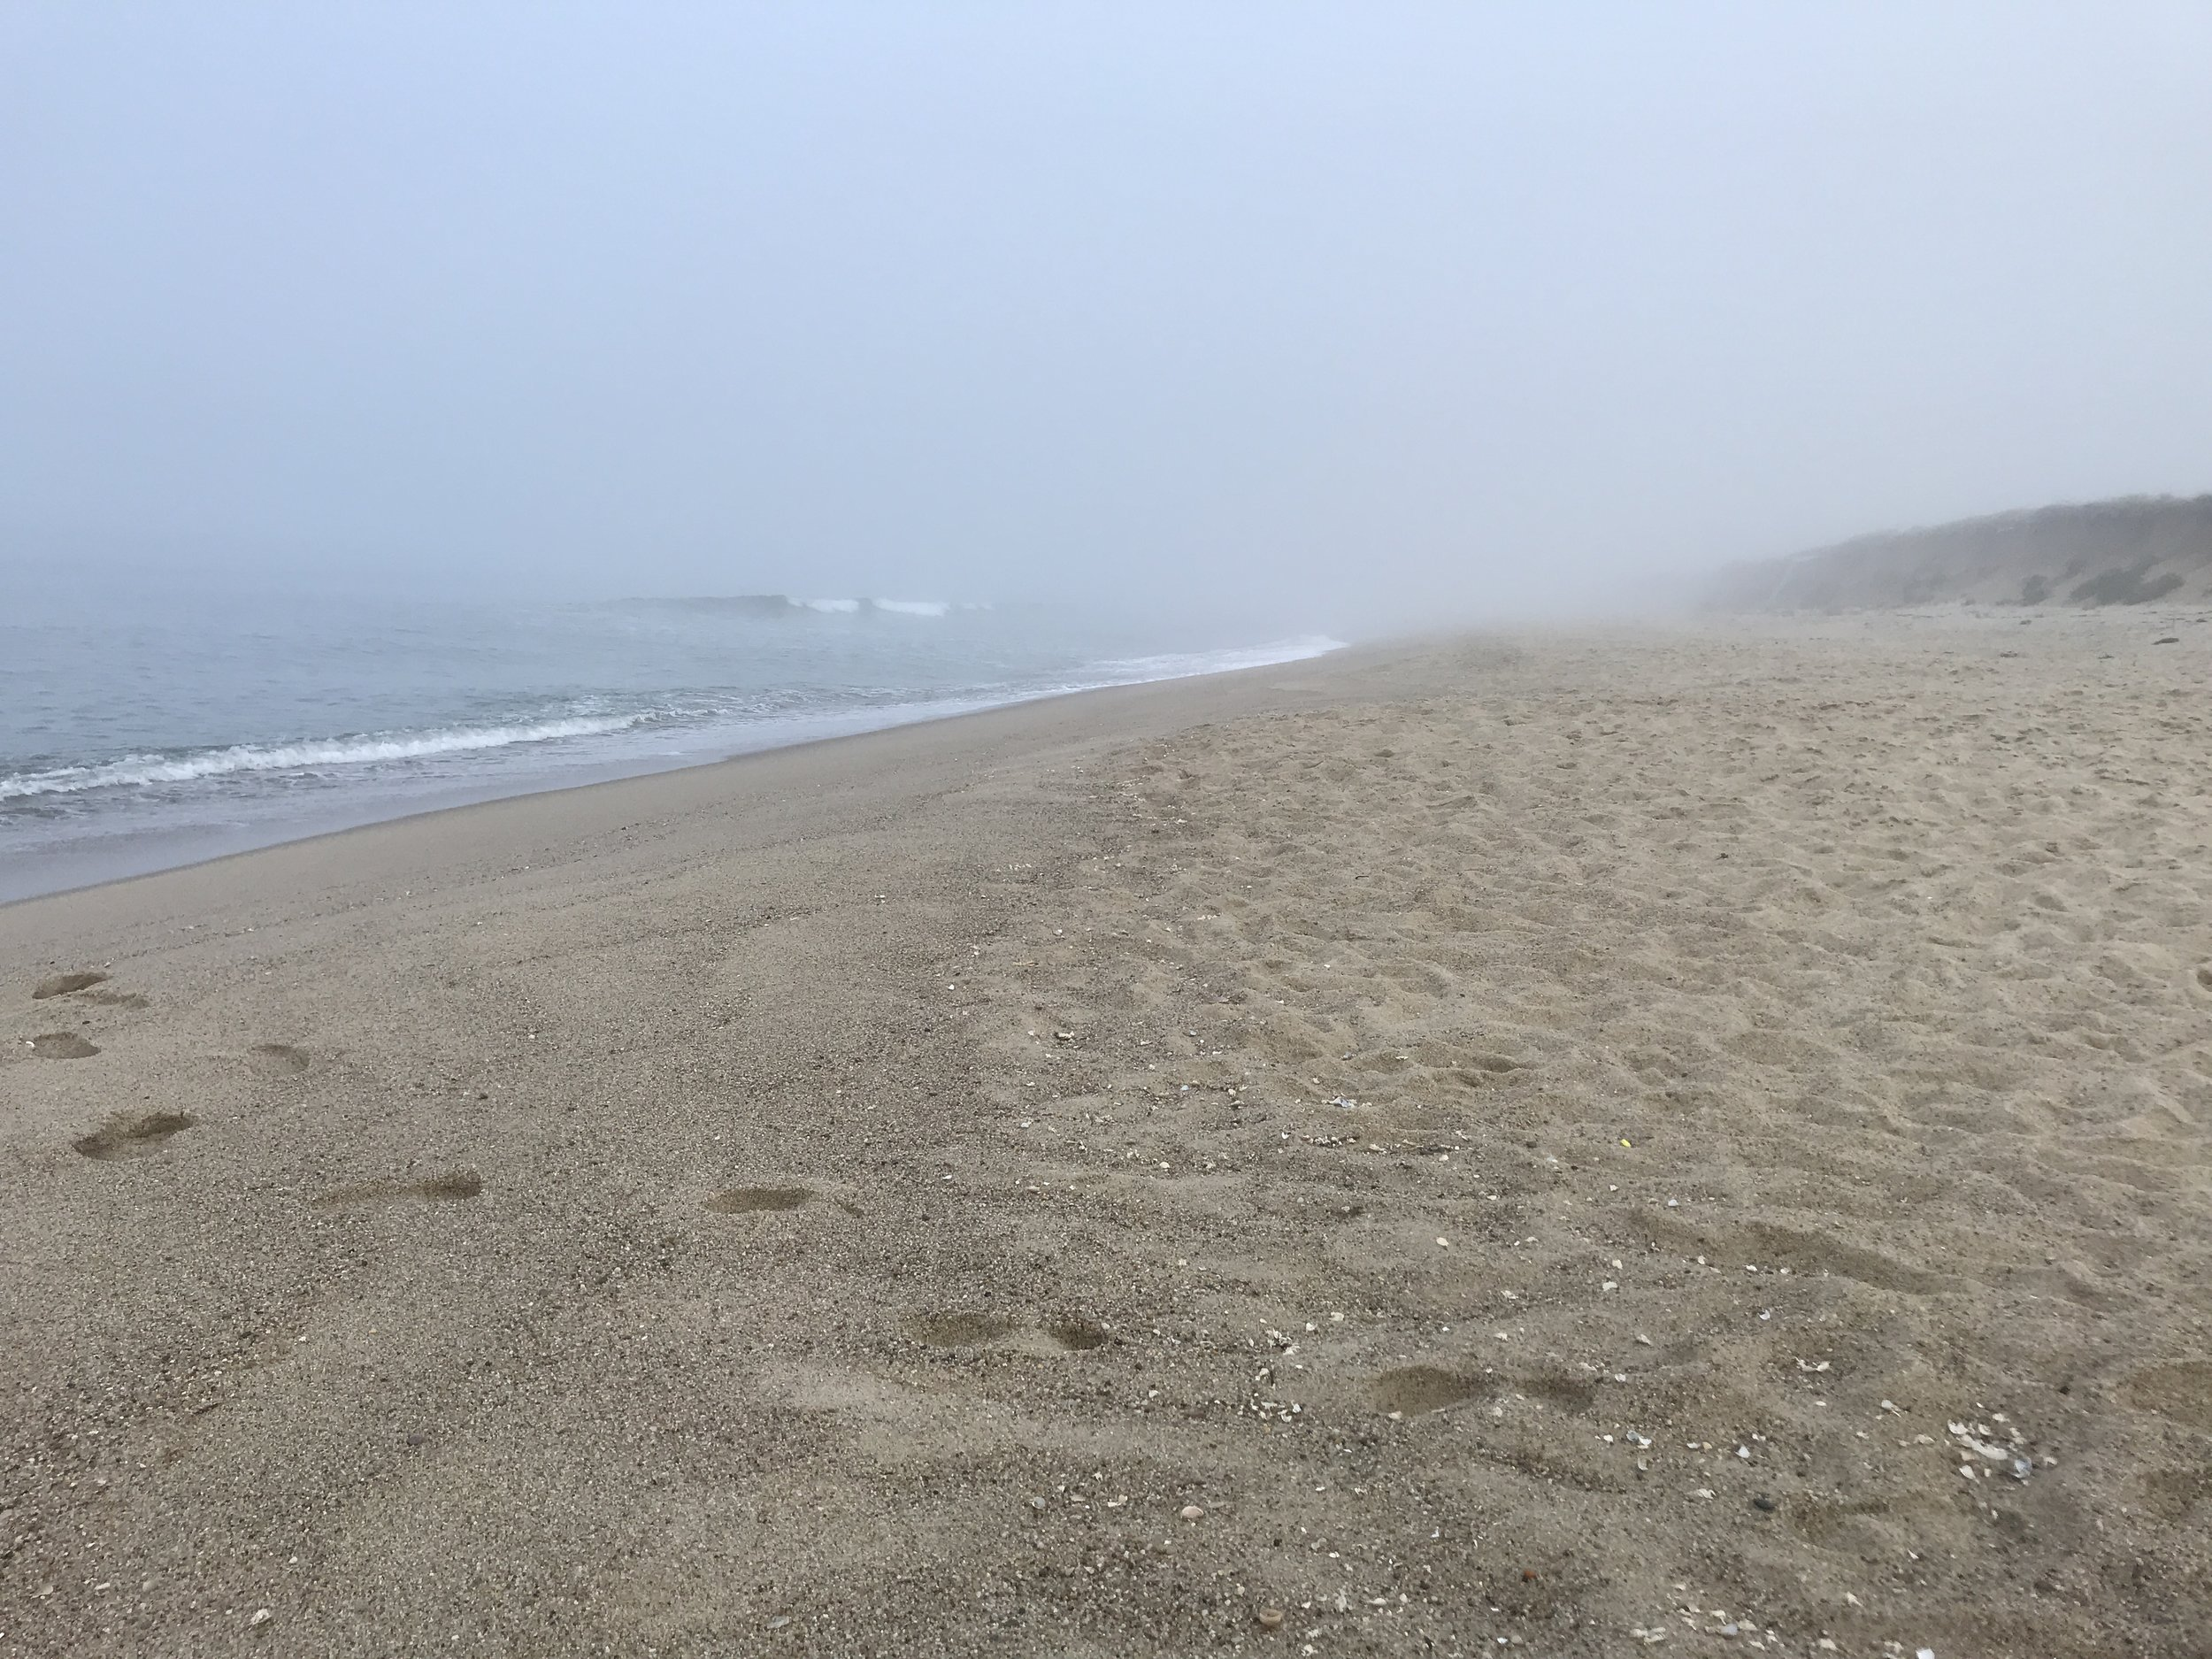 Bunny's Beach—not a soul in sight! 6:50 AM. ©betsygibsondesign